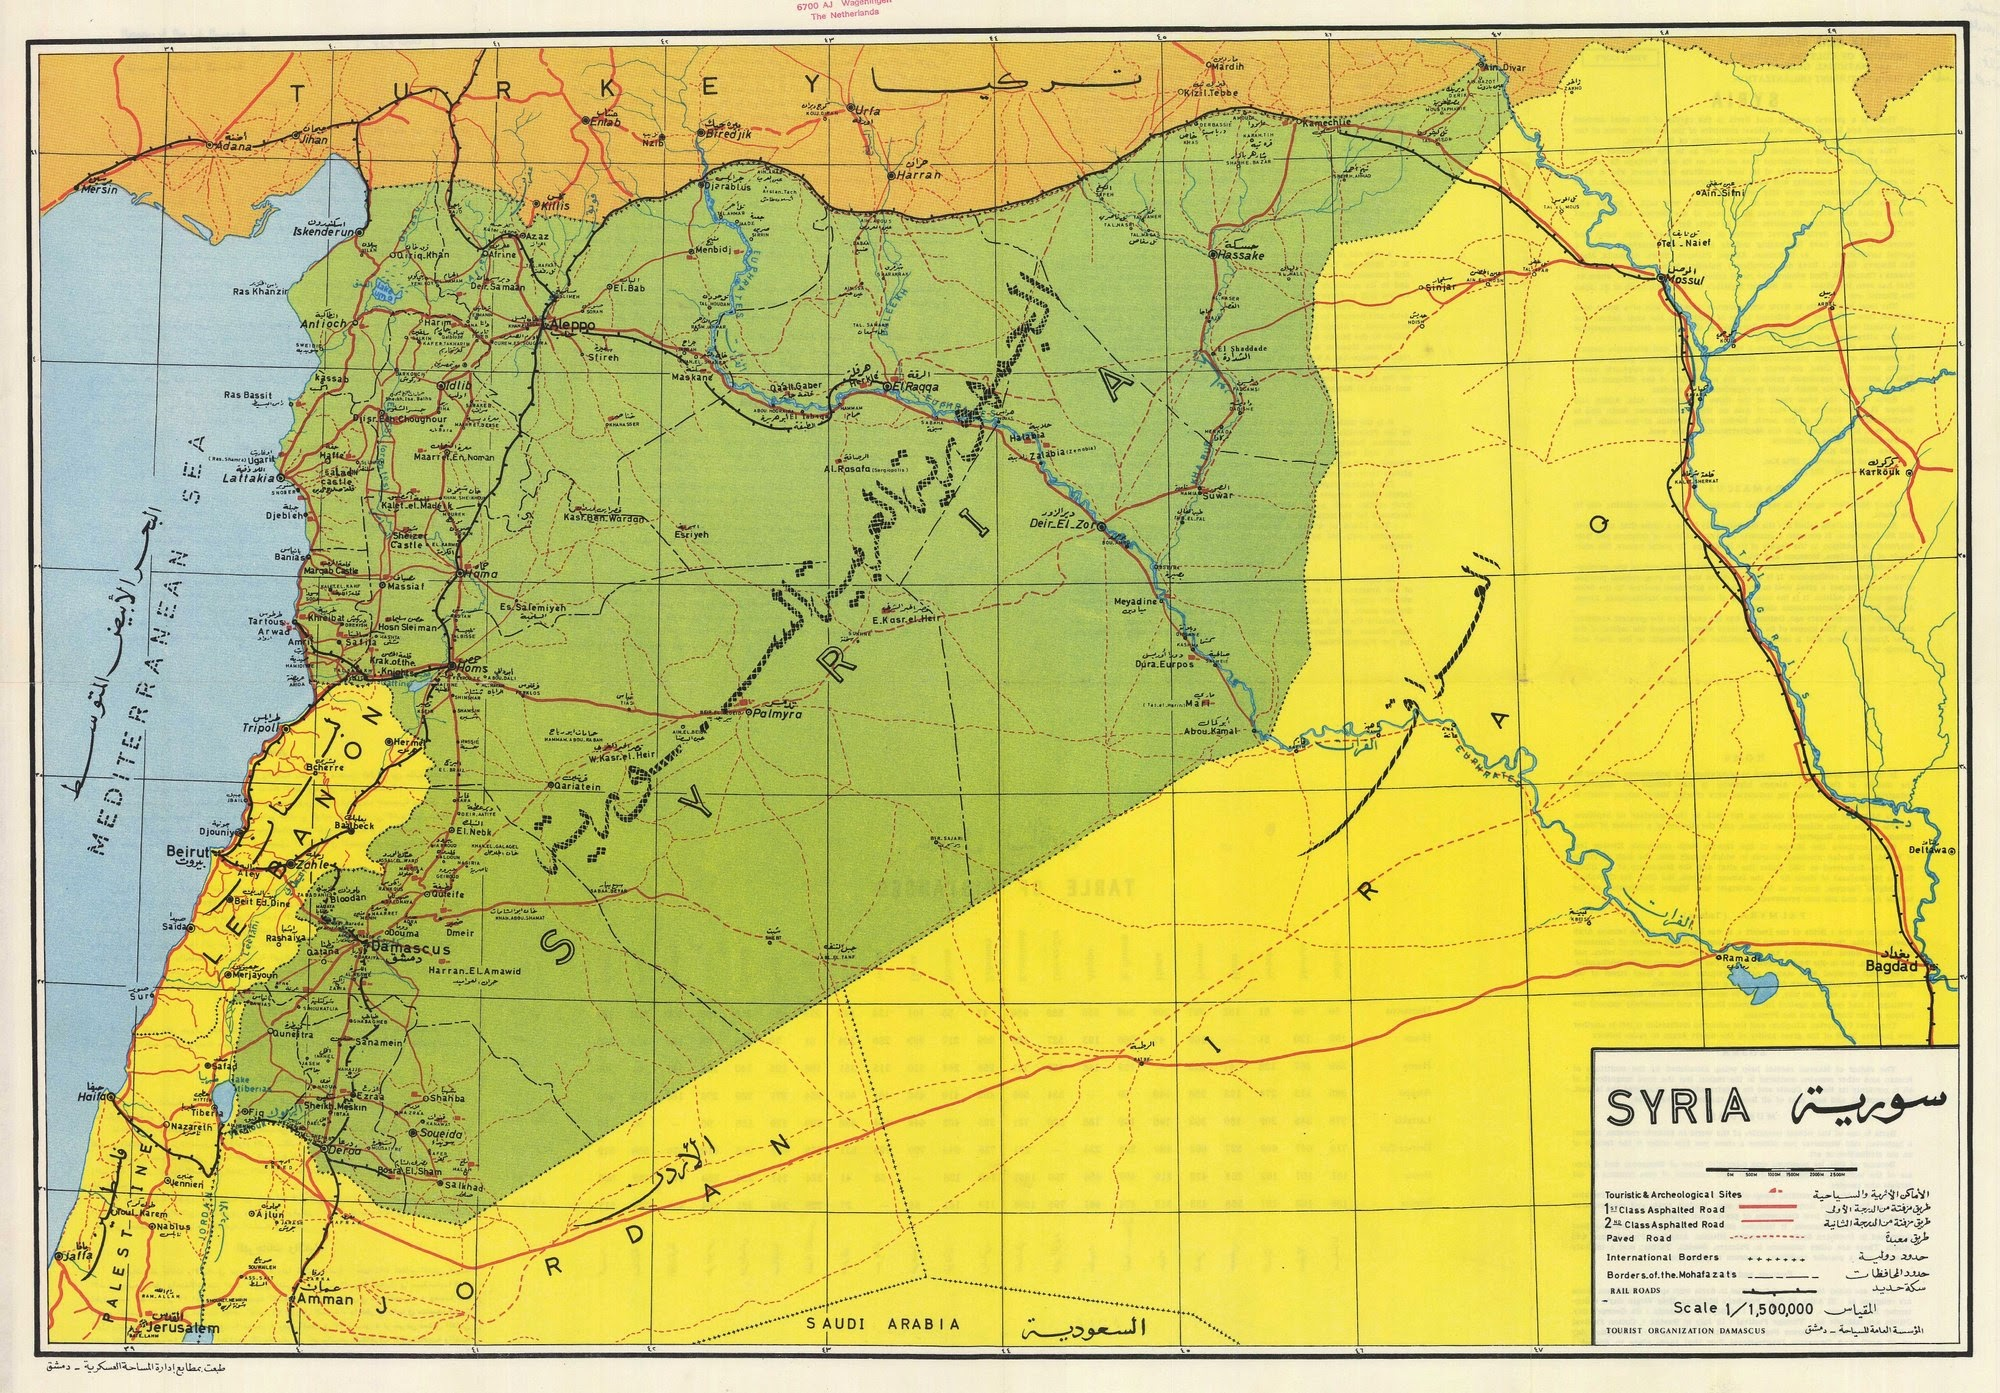 Afternoon Map Maps Of Syrias History - Map of egypt and syria